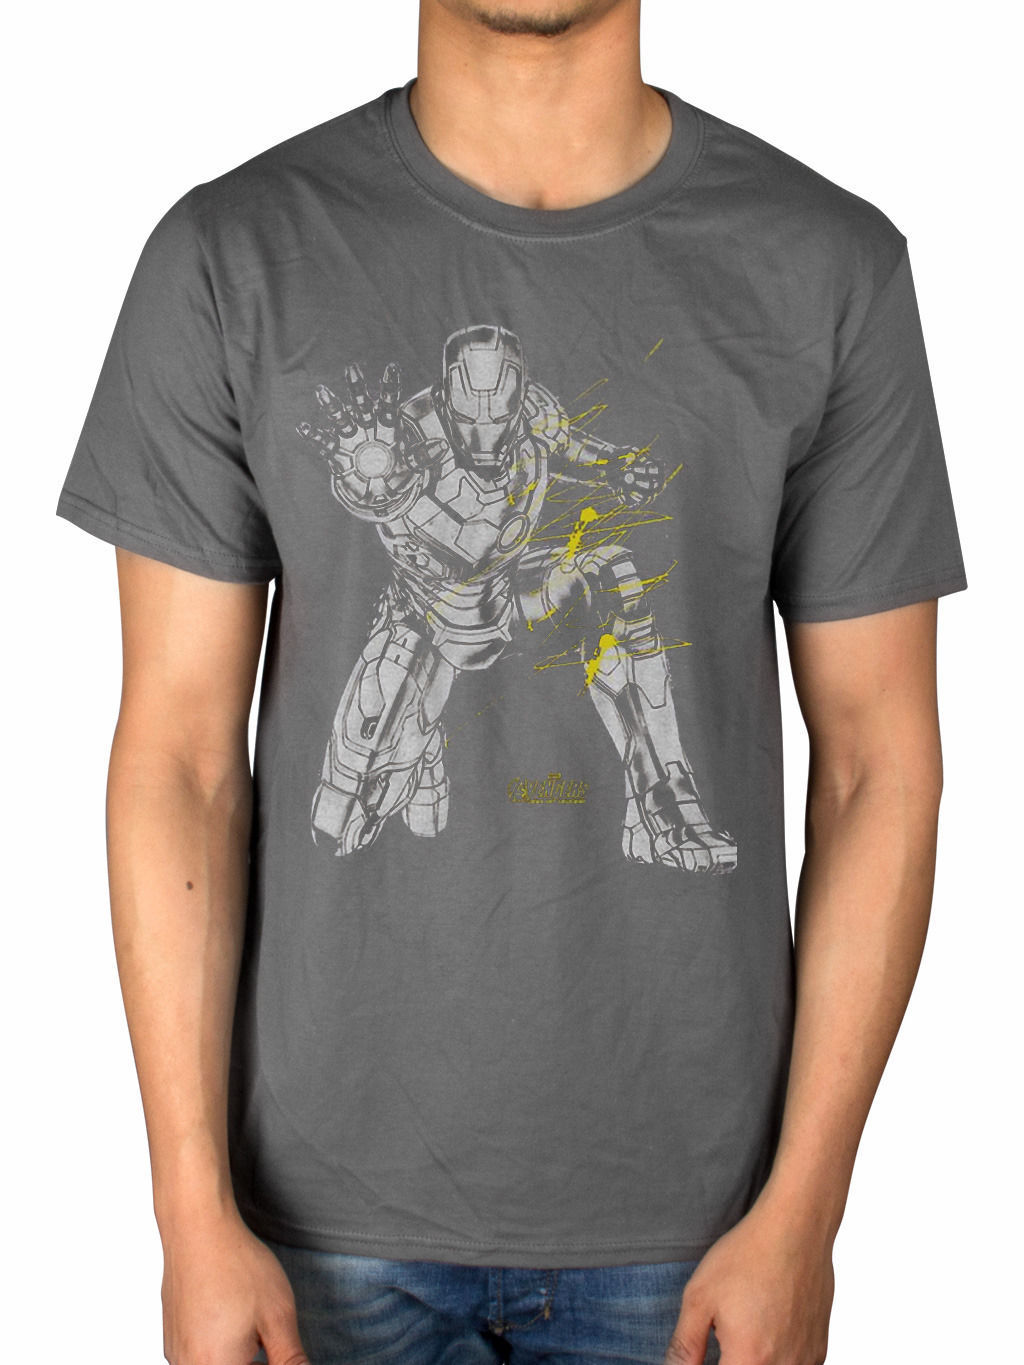 Official Marvel Avengers Di Ultron Iron Man Splash T-Shirt Merchandise